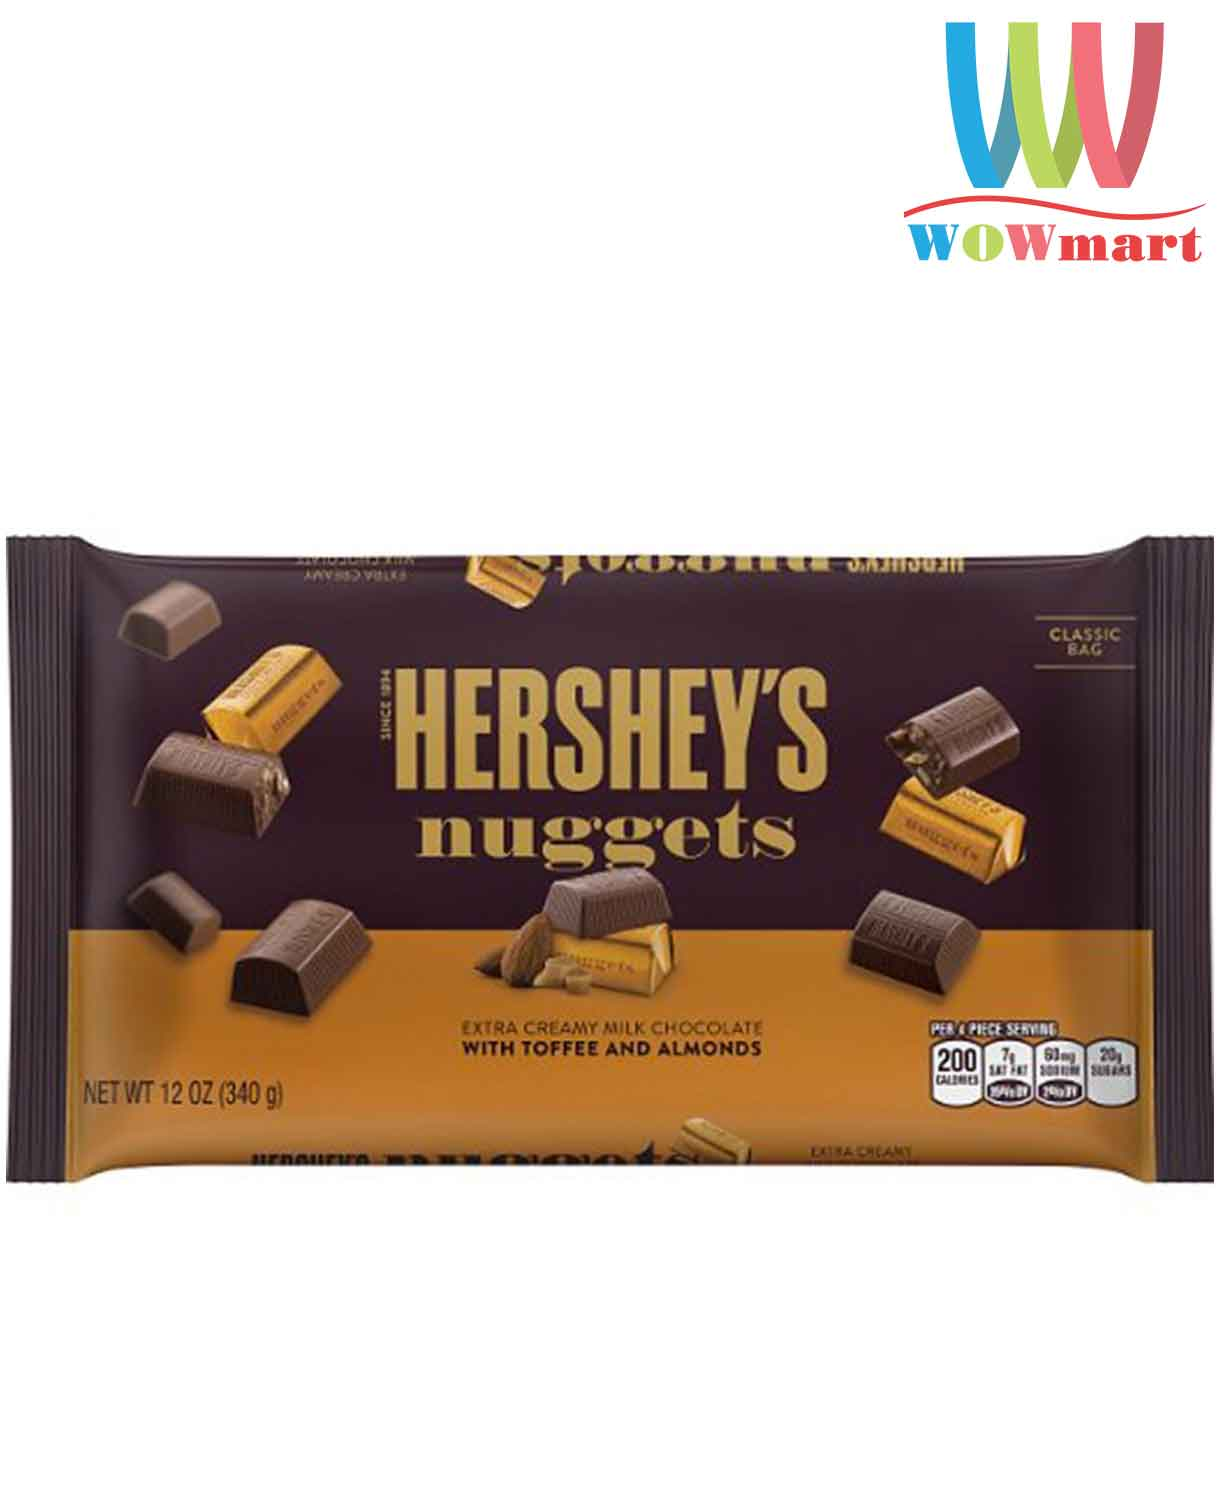 socola-hershey-bo-sua-hanh-nhan-hersheys-nuggets-with-toffee-and-almonds-340g